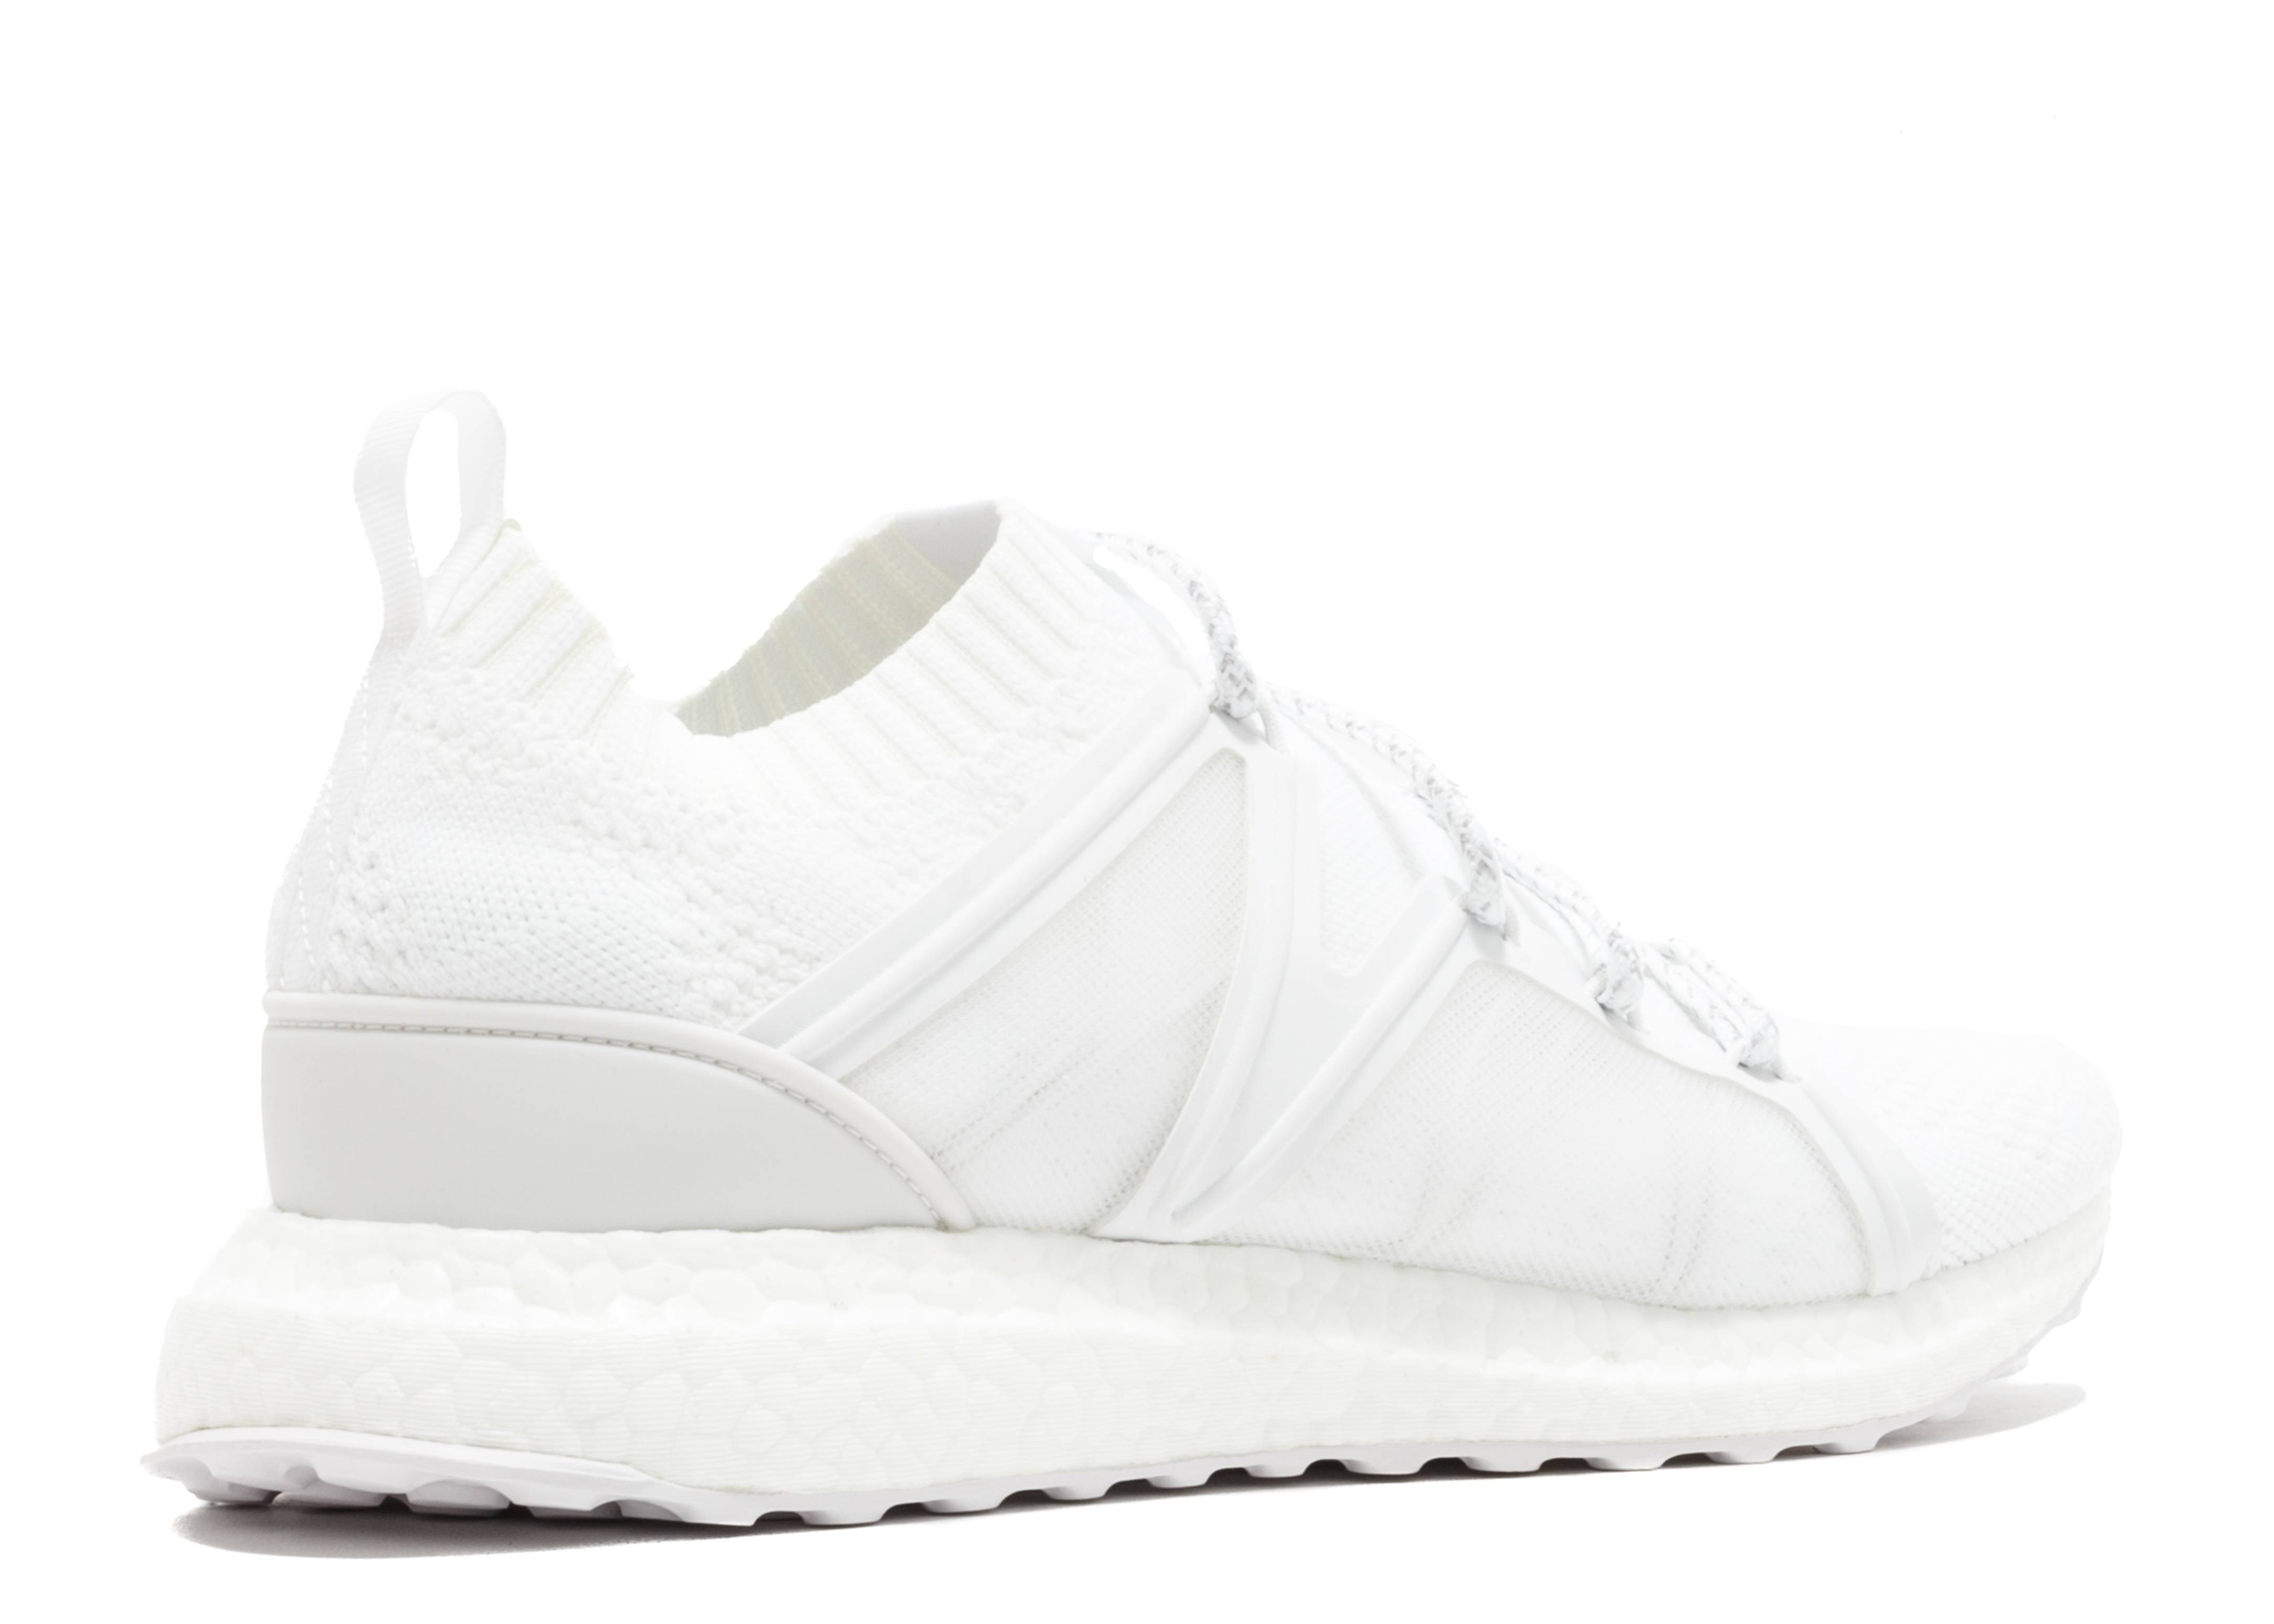 7f048af26958 Adidas EQT Support 93 16 x BAIT Research - 3